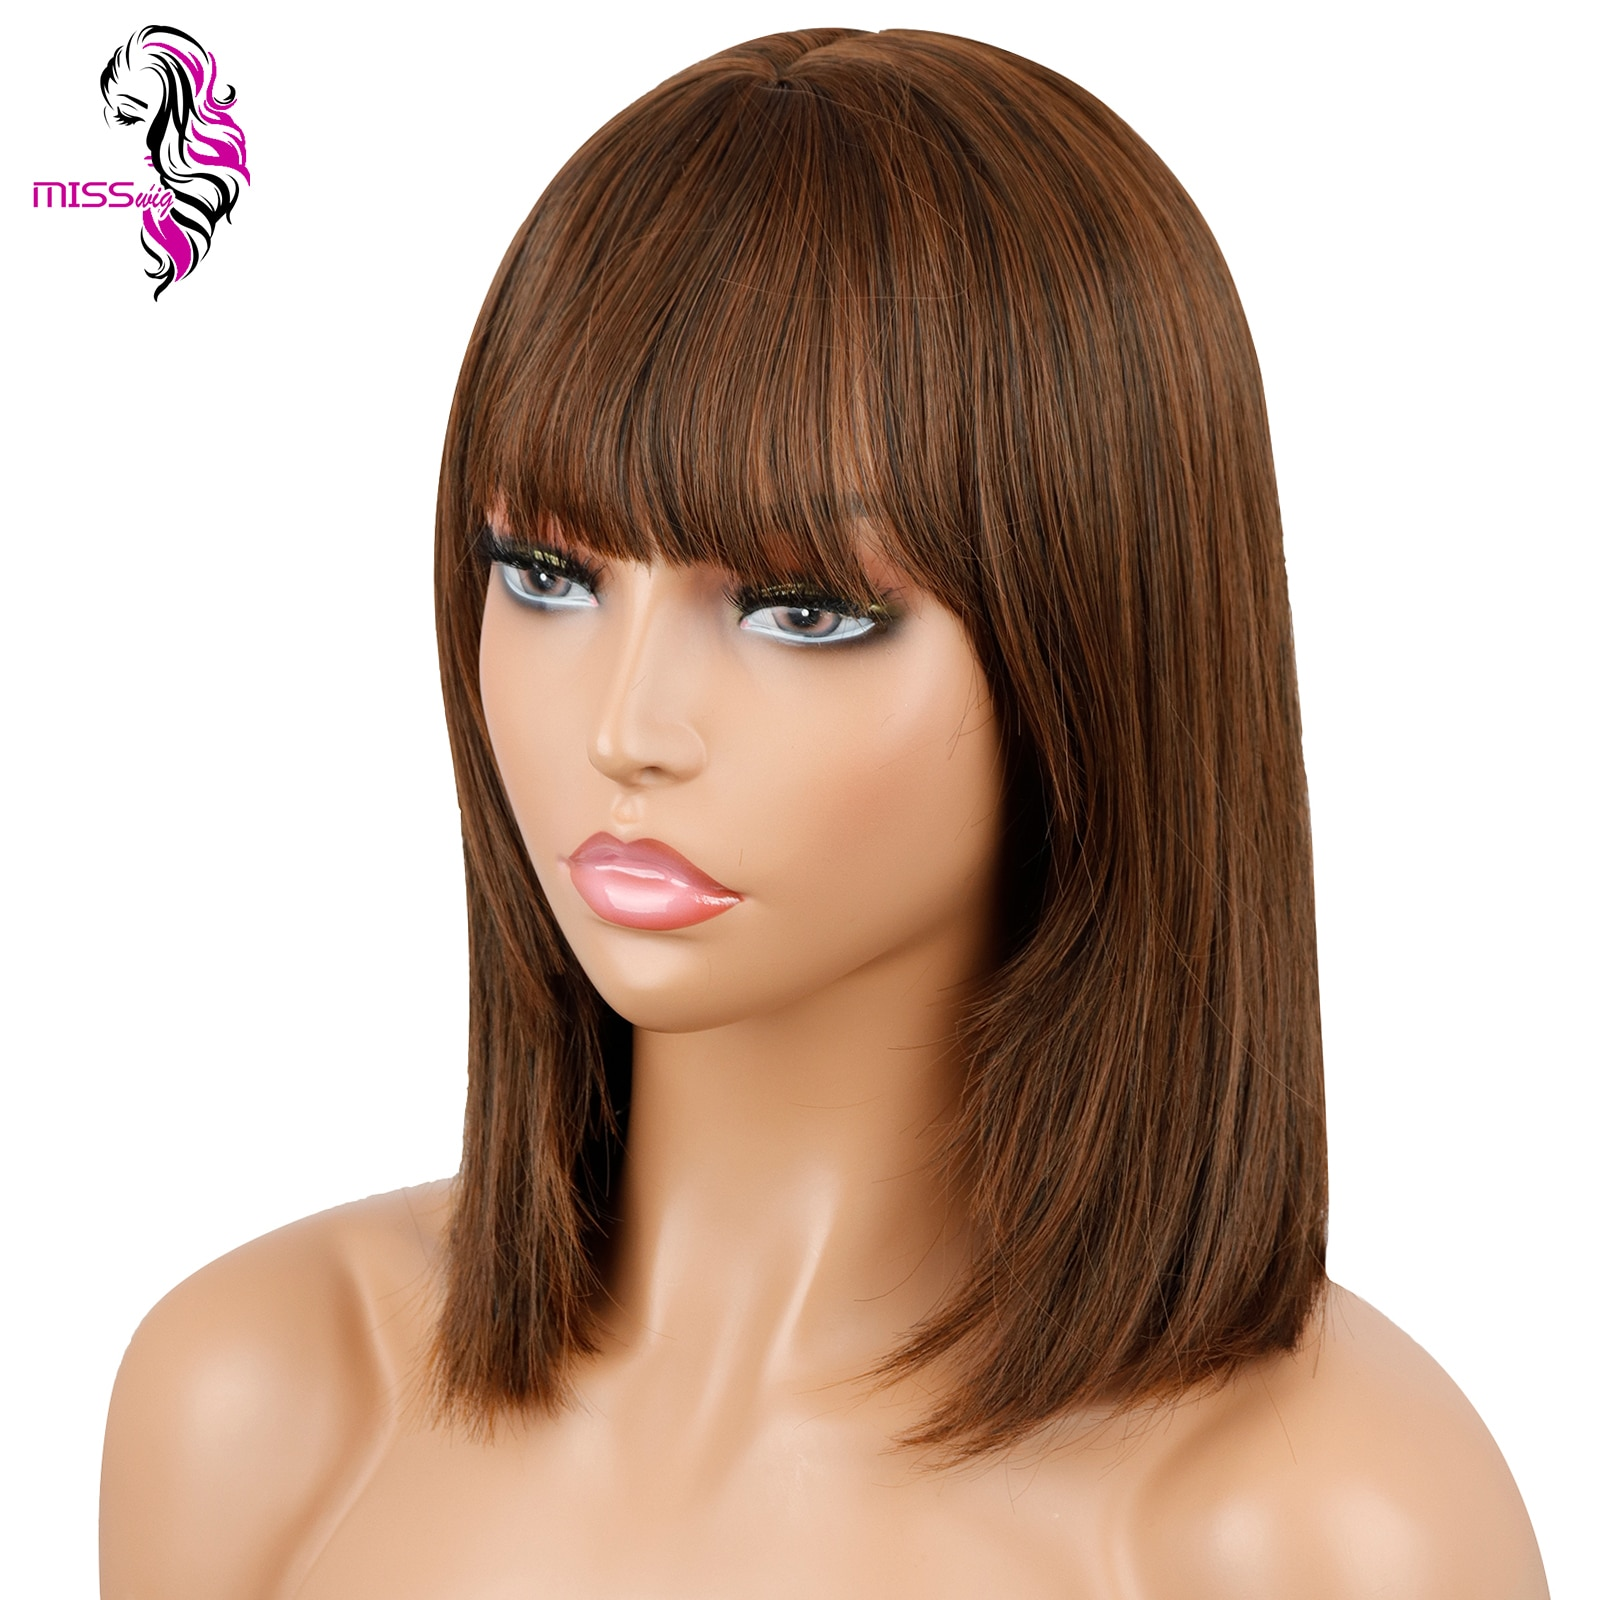 MISS WIG Short Bob Wig With Bangs for Women Synthetic Black Brown Red brown Party/Daily Use Shoulder Length